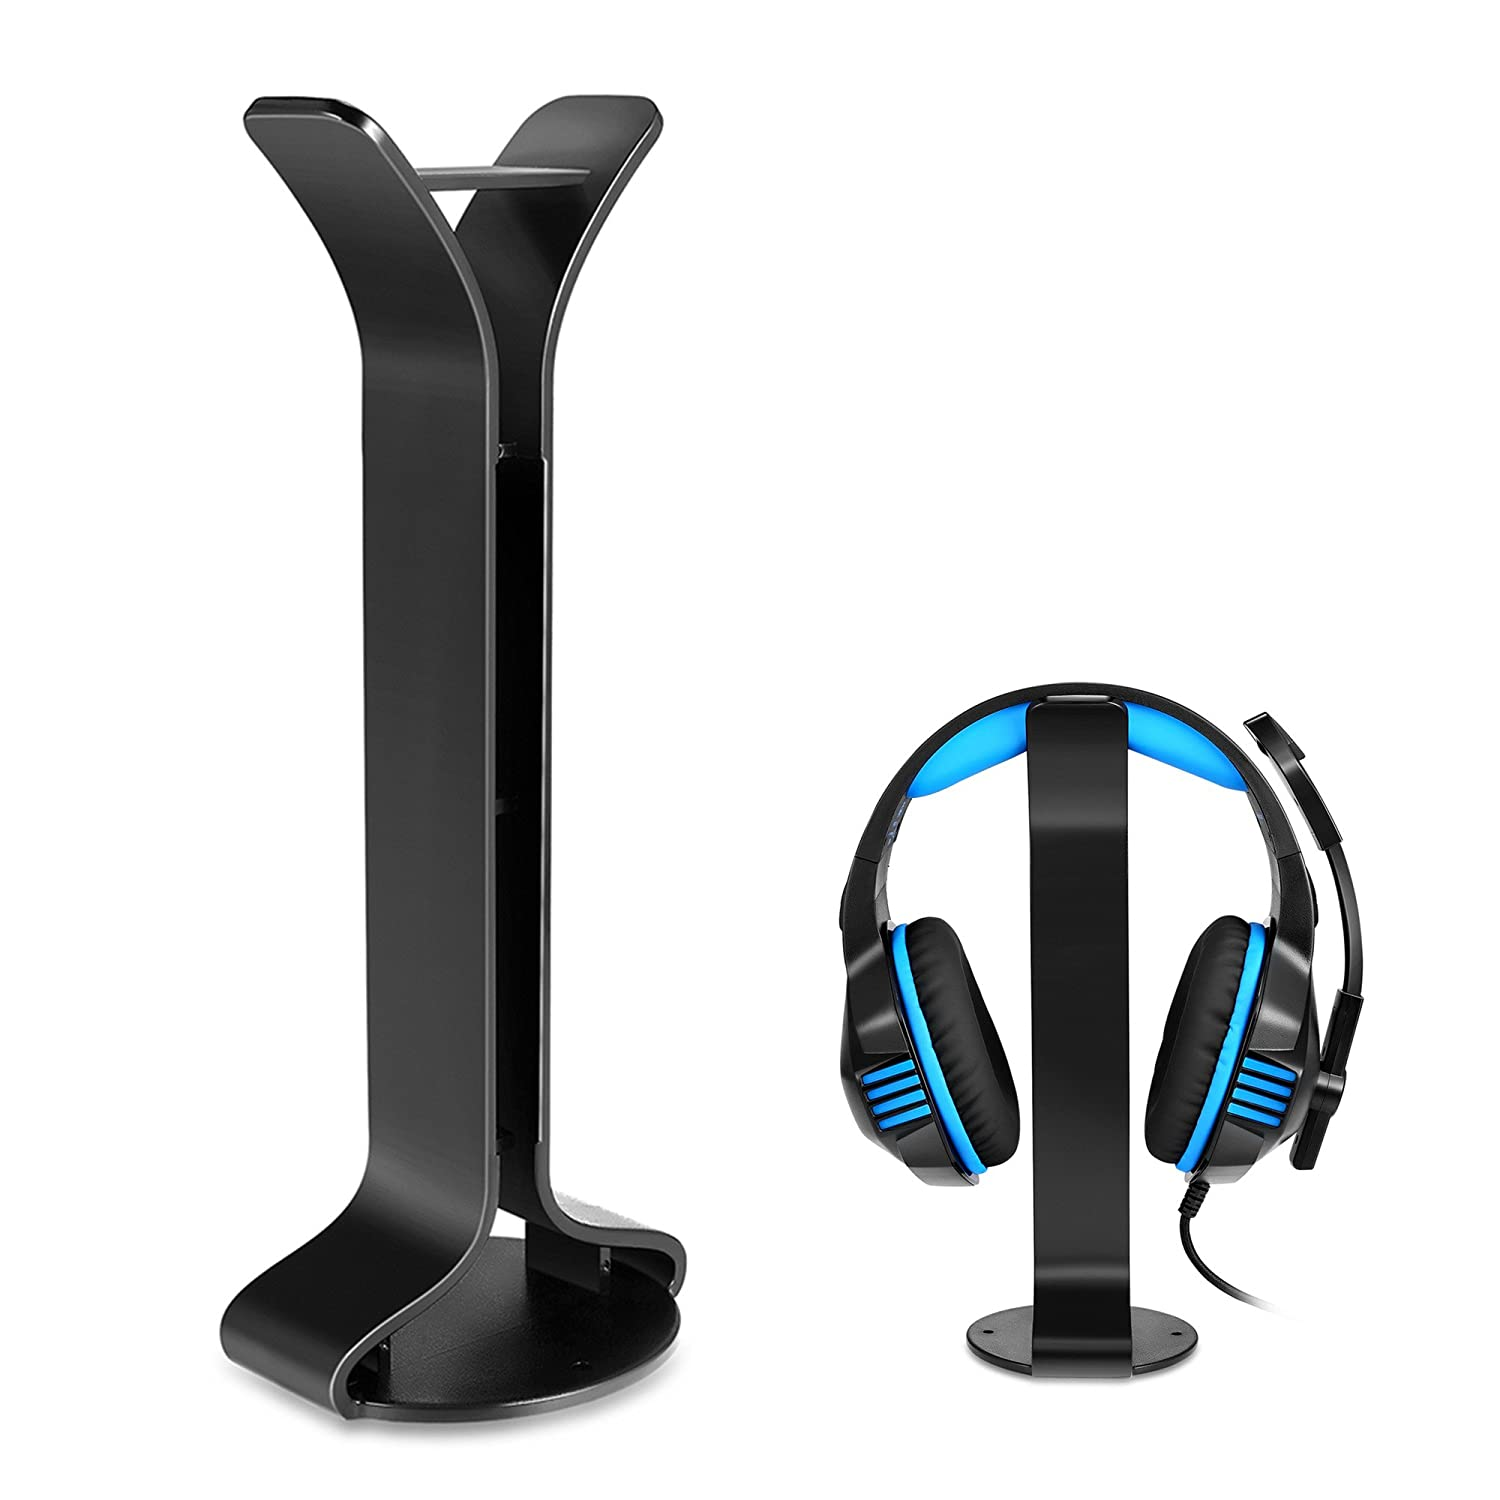 Headphone Stand Headset Holder Earphone Stand ABS Solid Base for All Headphones Size-Black Micolindun